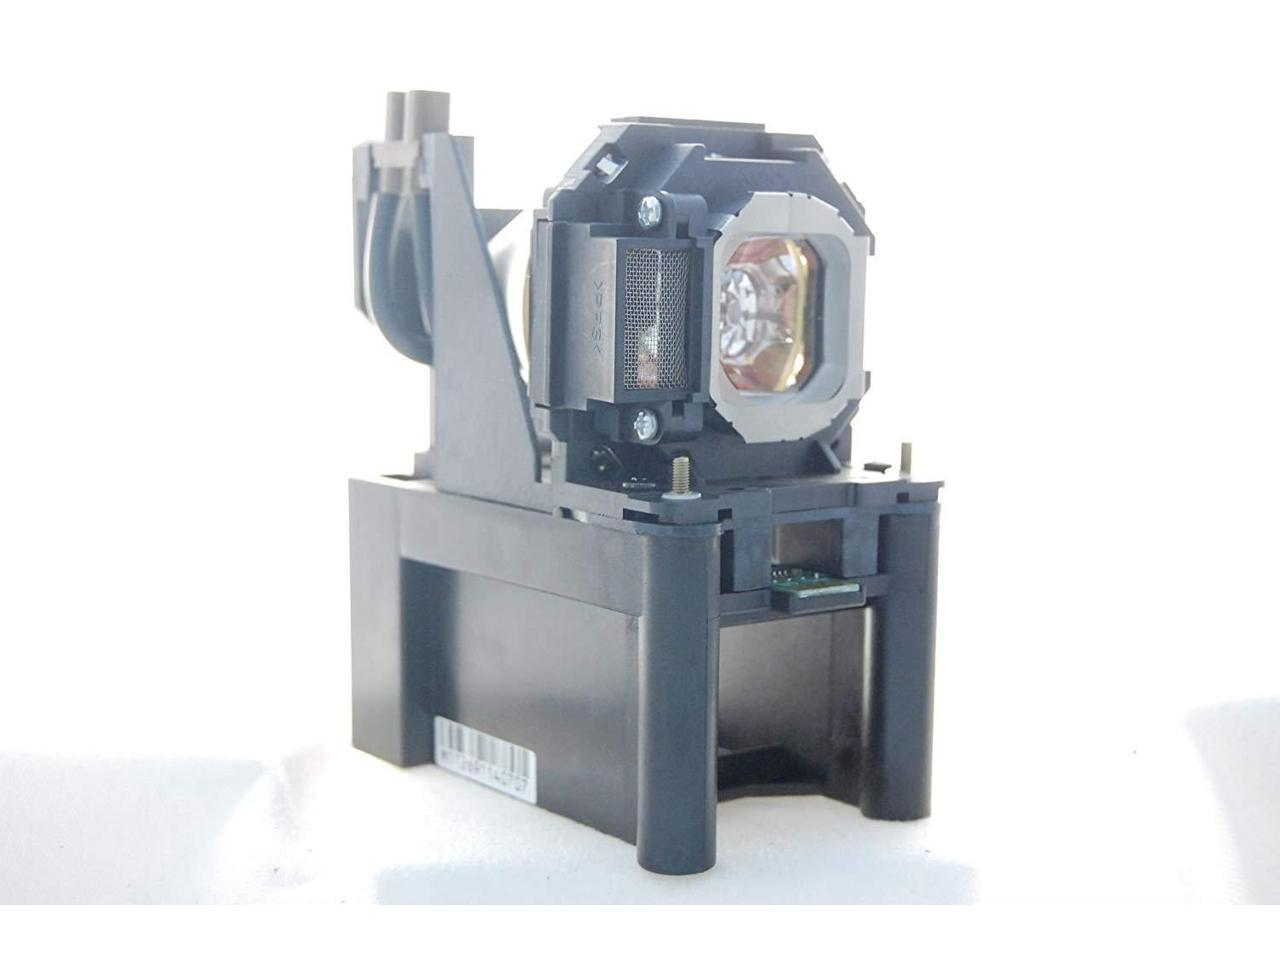 Araca ET-LAV400 Projector Lamp with Housing for Panasonic PT-VZ580U VW540U VW545NU VX610 VZ585NU VX610U VX600 VW540 VW545N VZ580 VZ585N VX600U VZ575N VZ570 VZ470U Projector